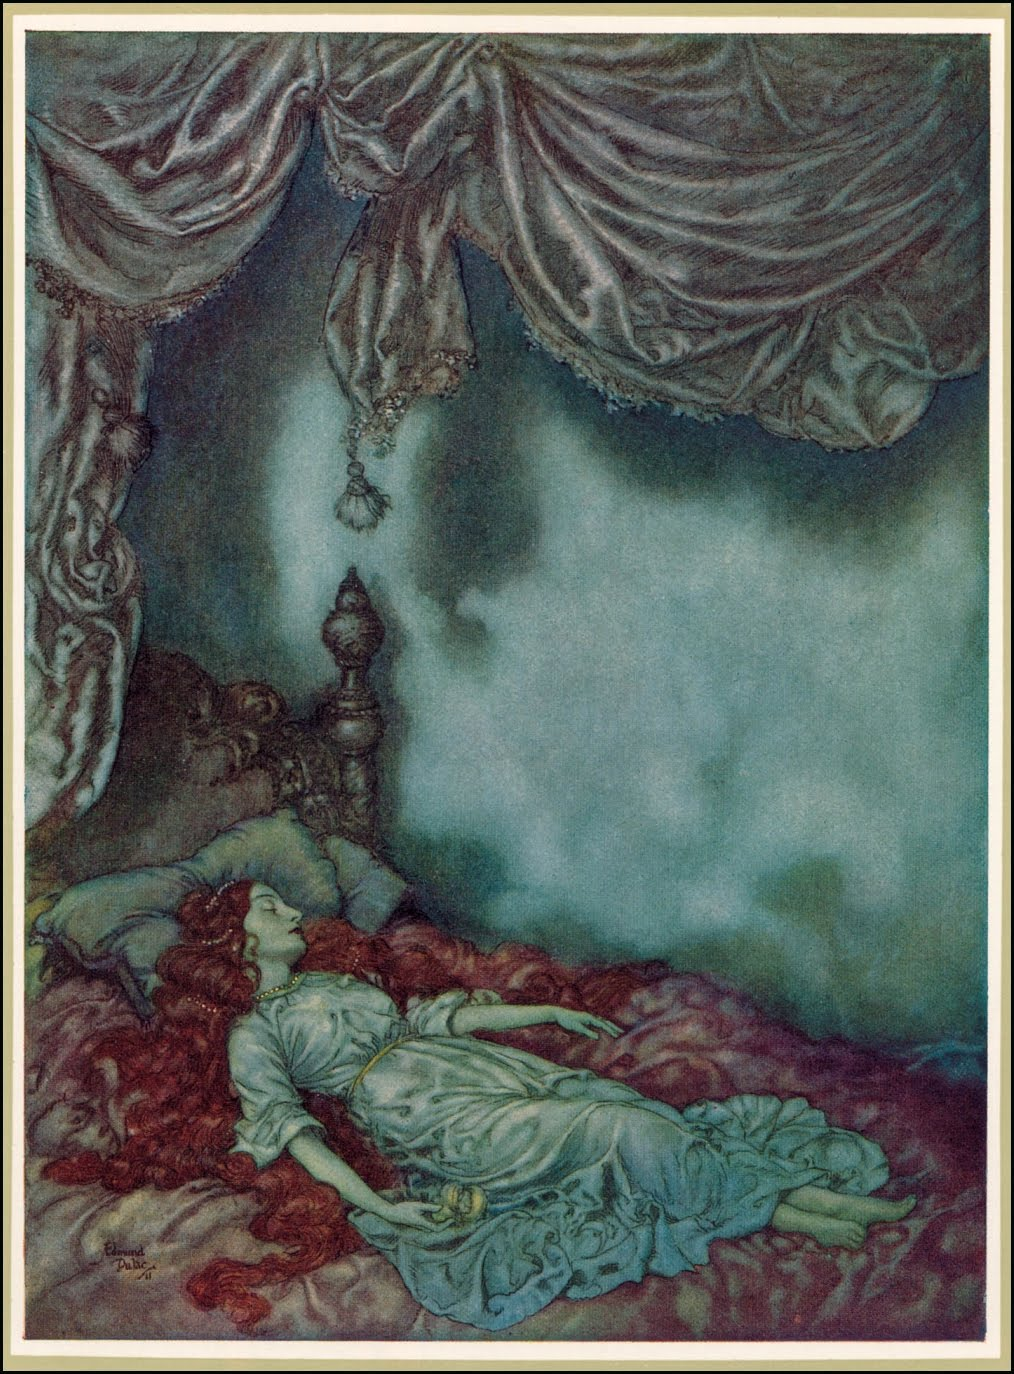 edmond dulac sleeper